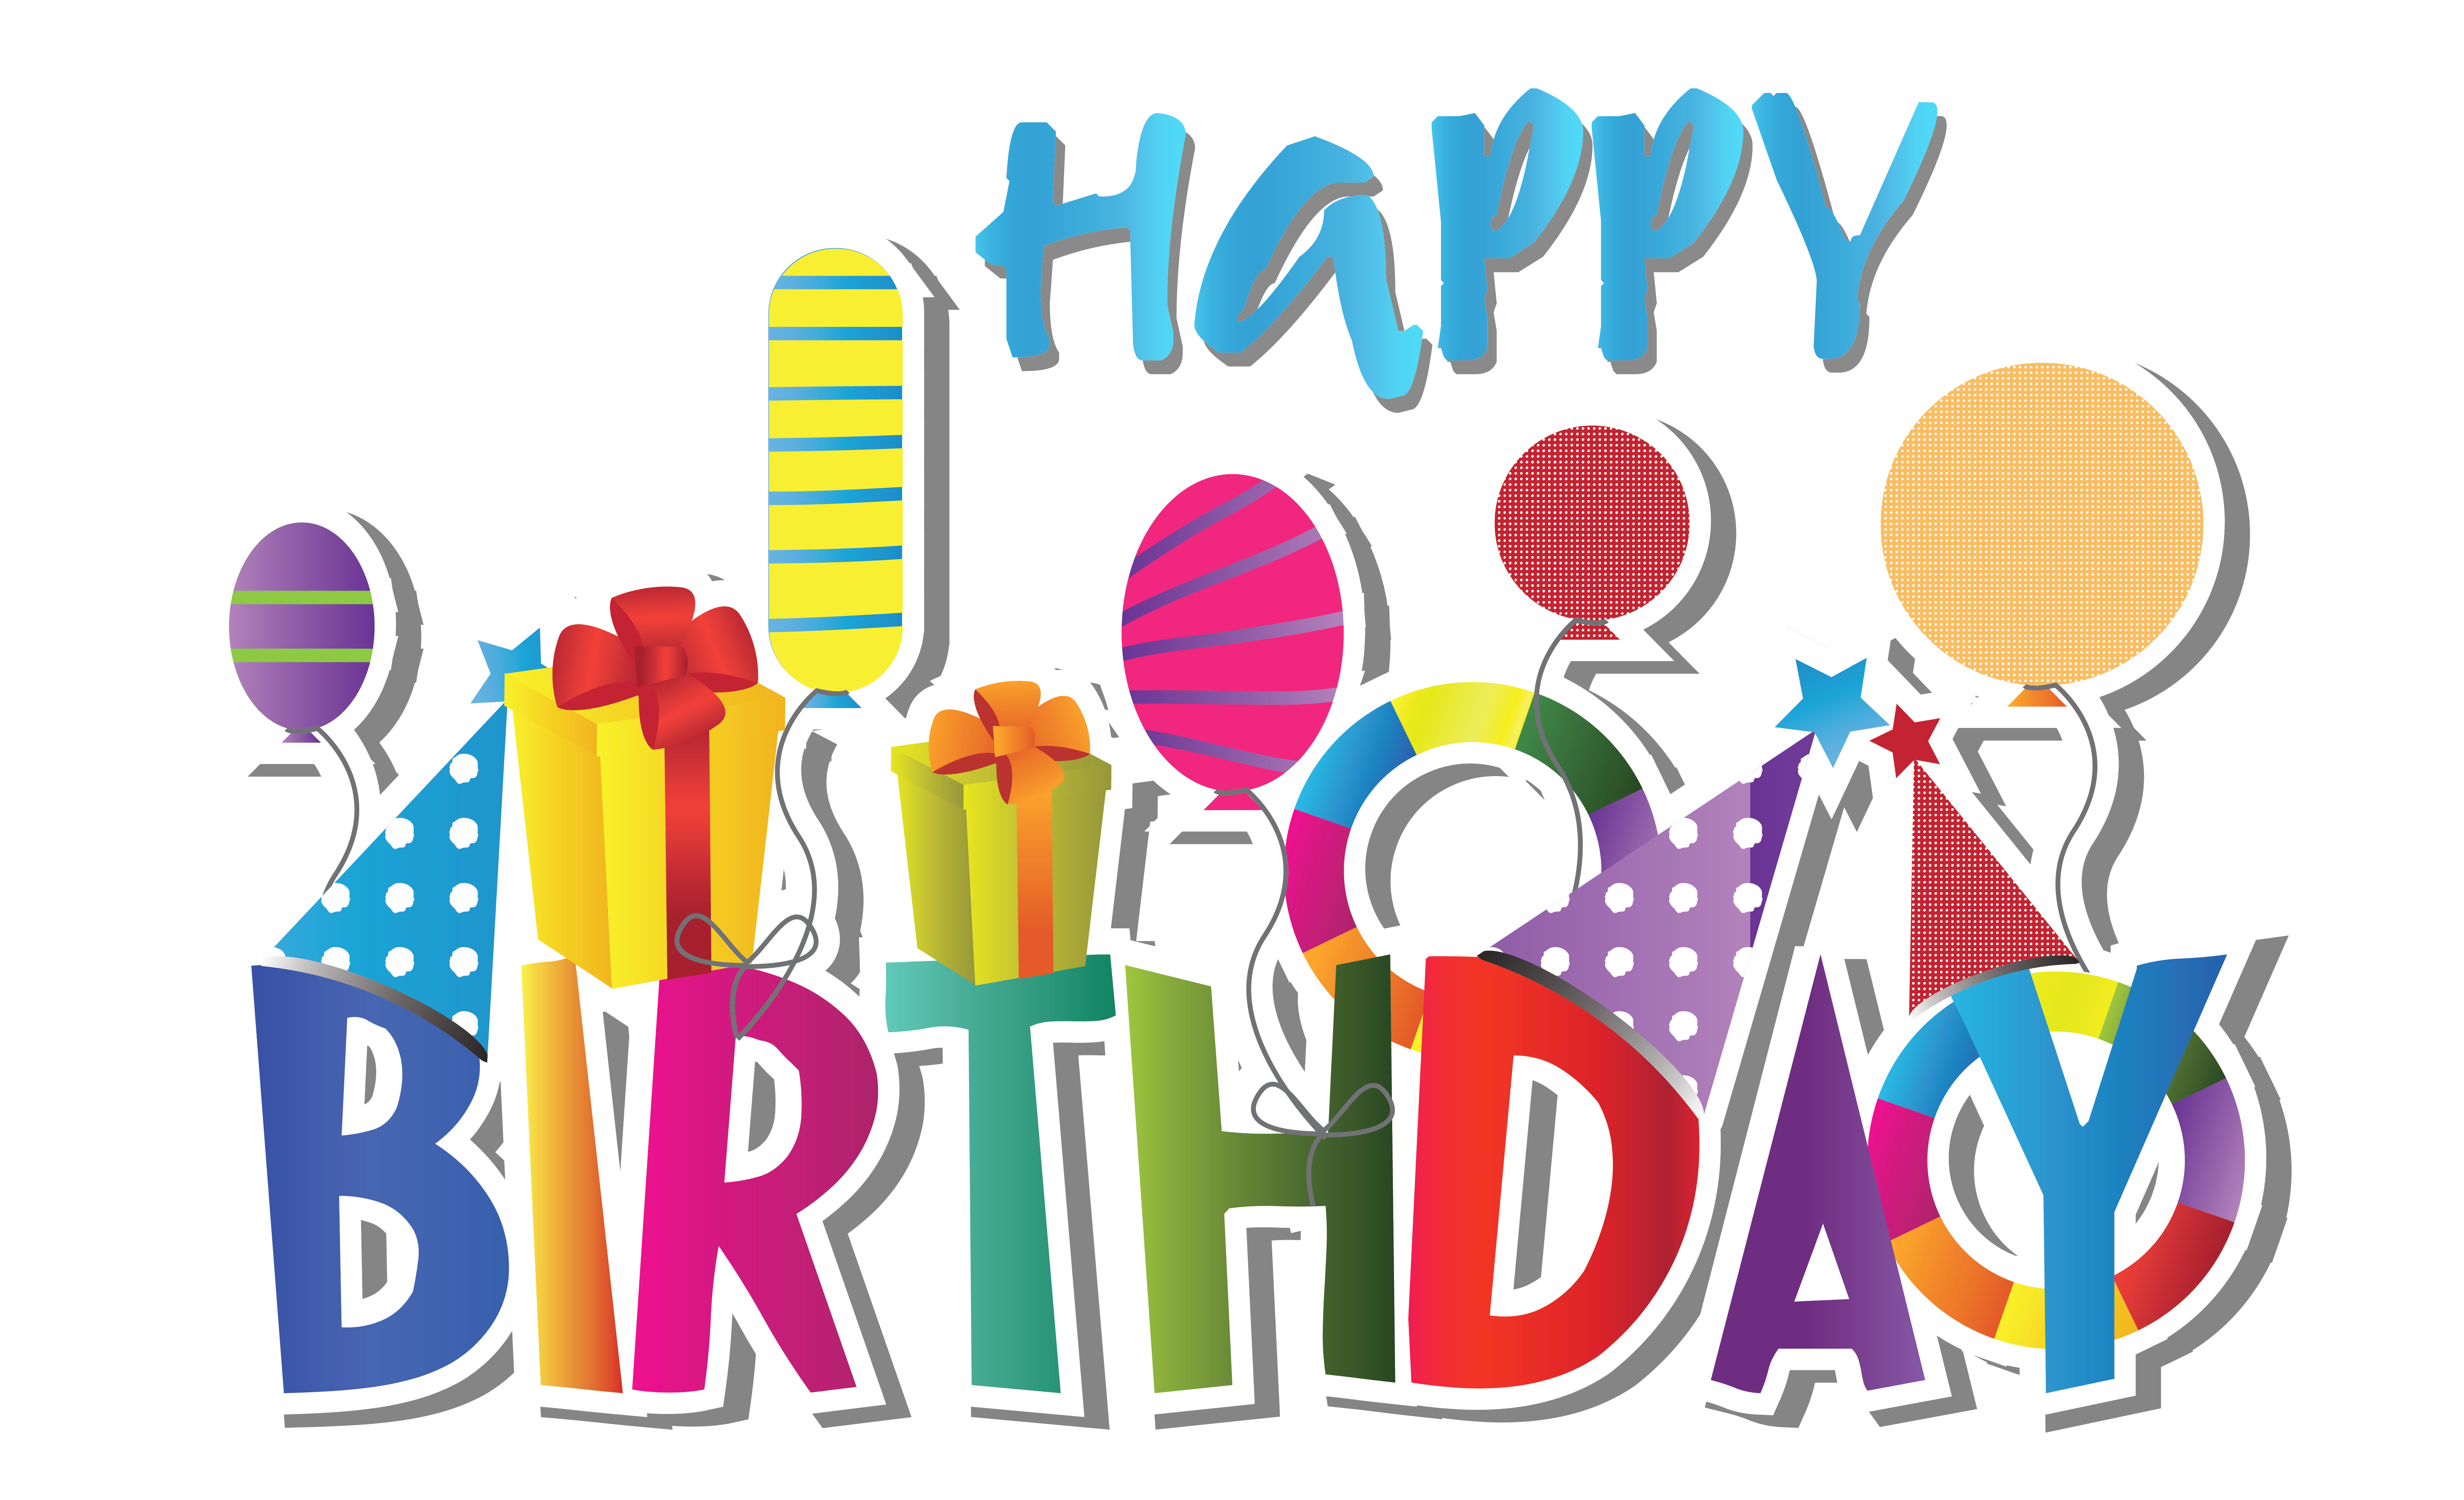 spongebob birthday clipart at getdrawings com free for personal rh getdrawings com animated birthday clip art that moves animated birthday clipart free